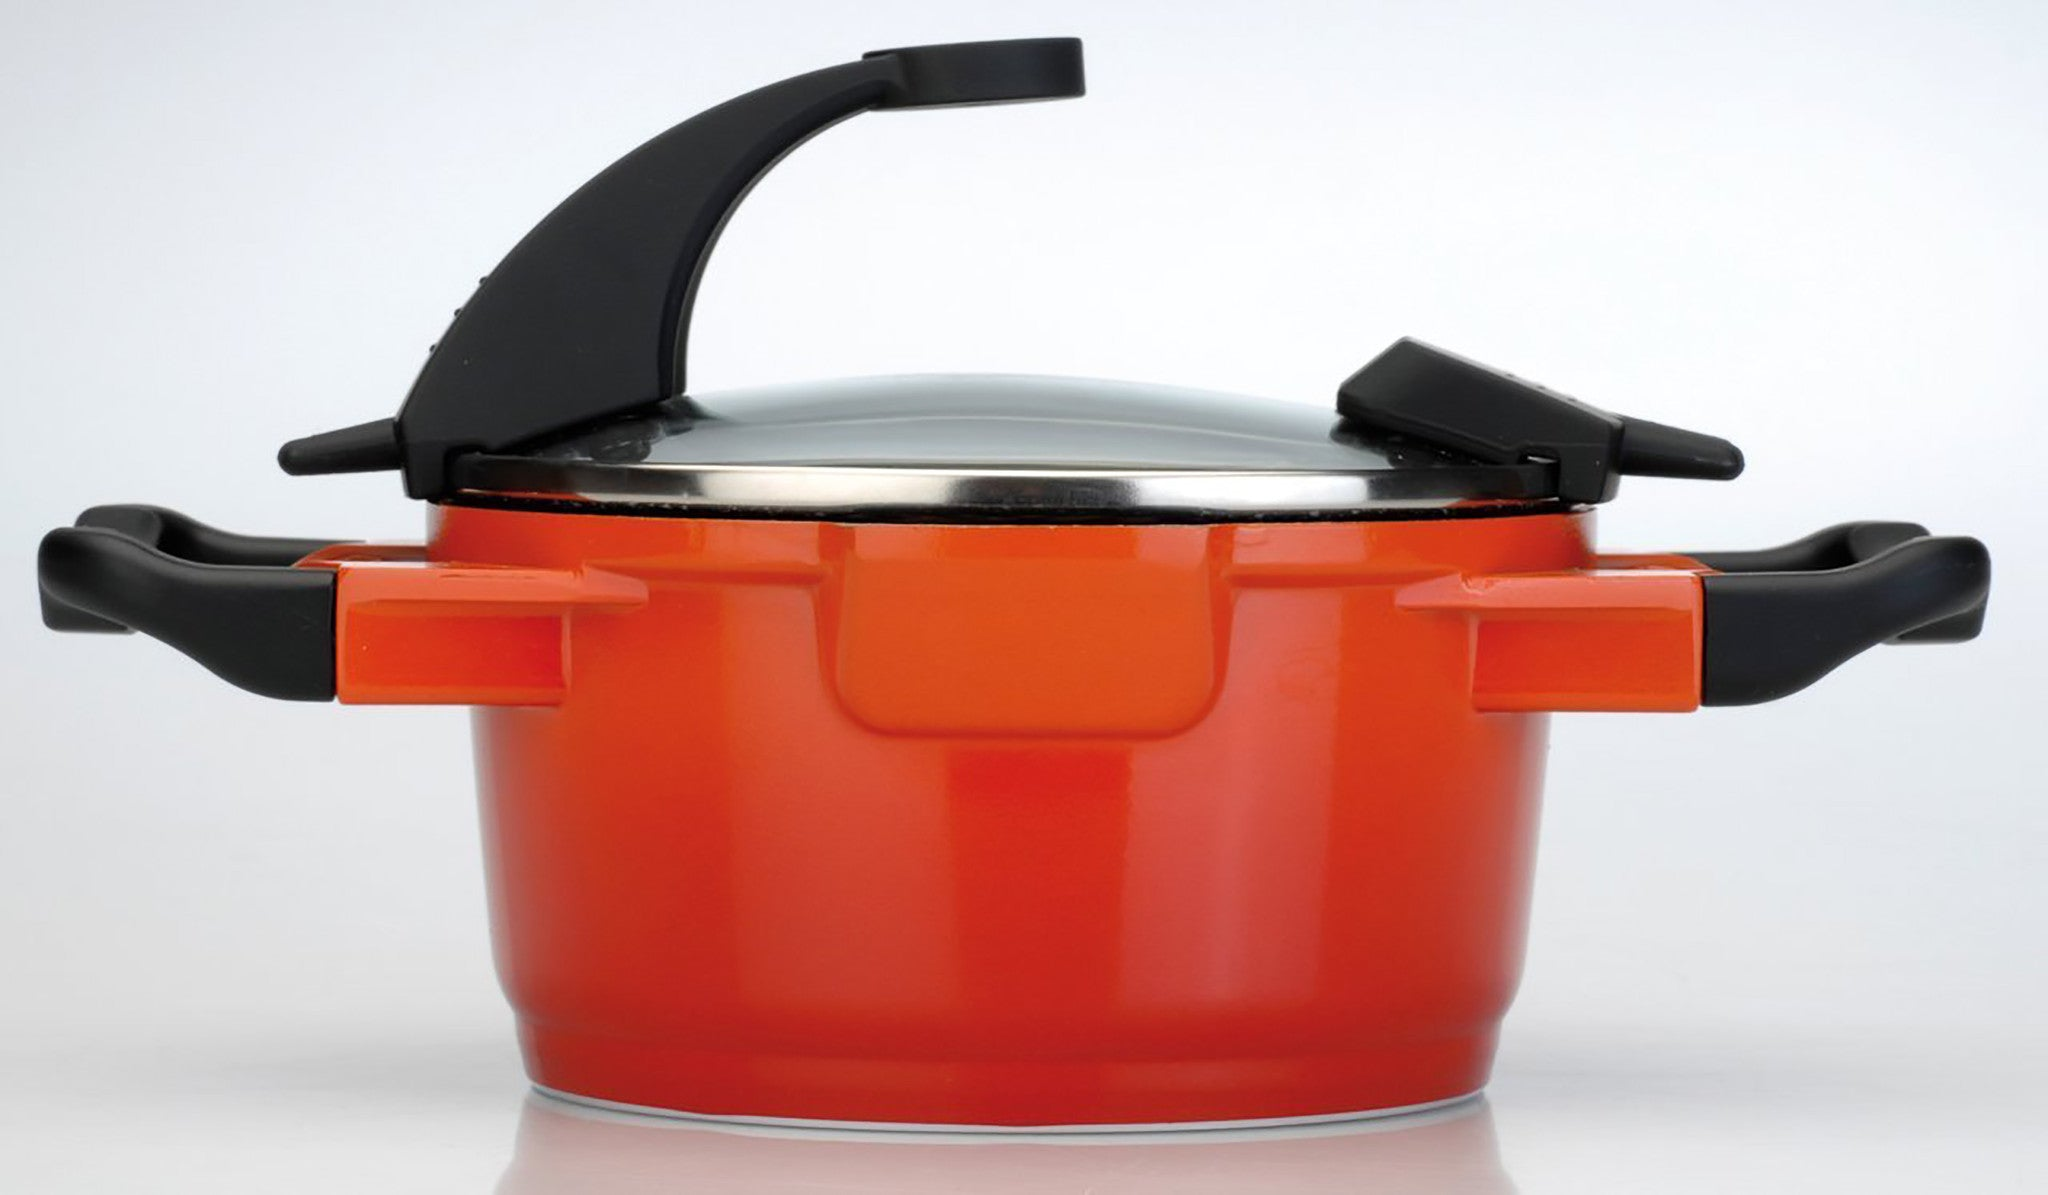 Virgo 16cm Covered Casserole